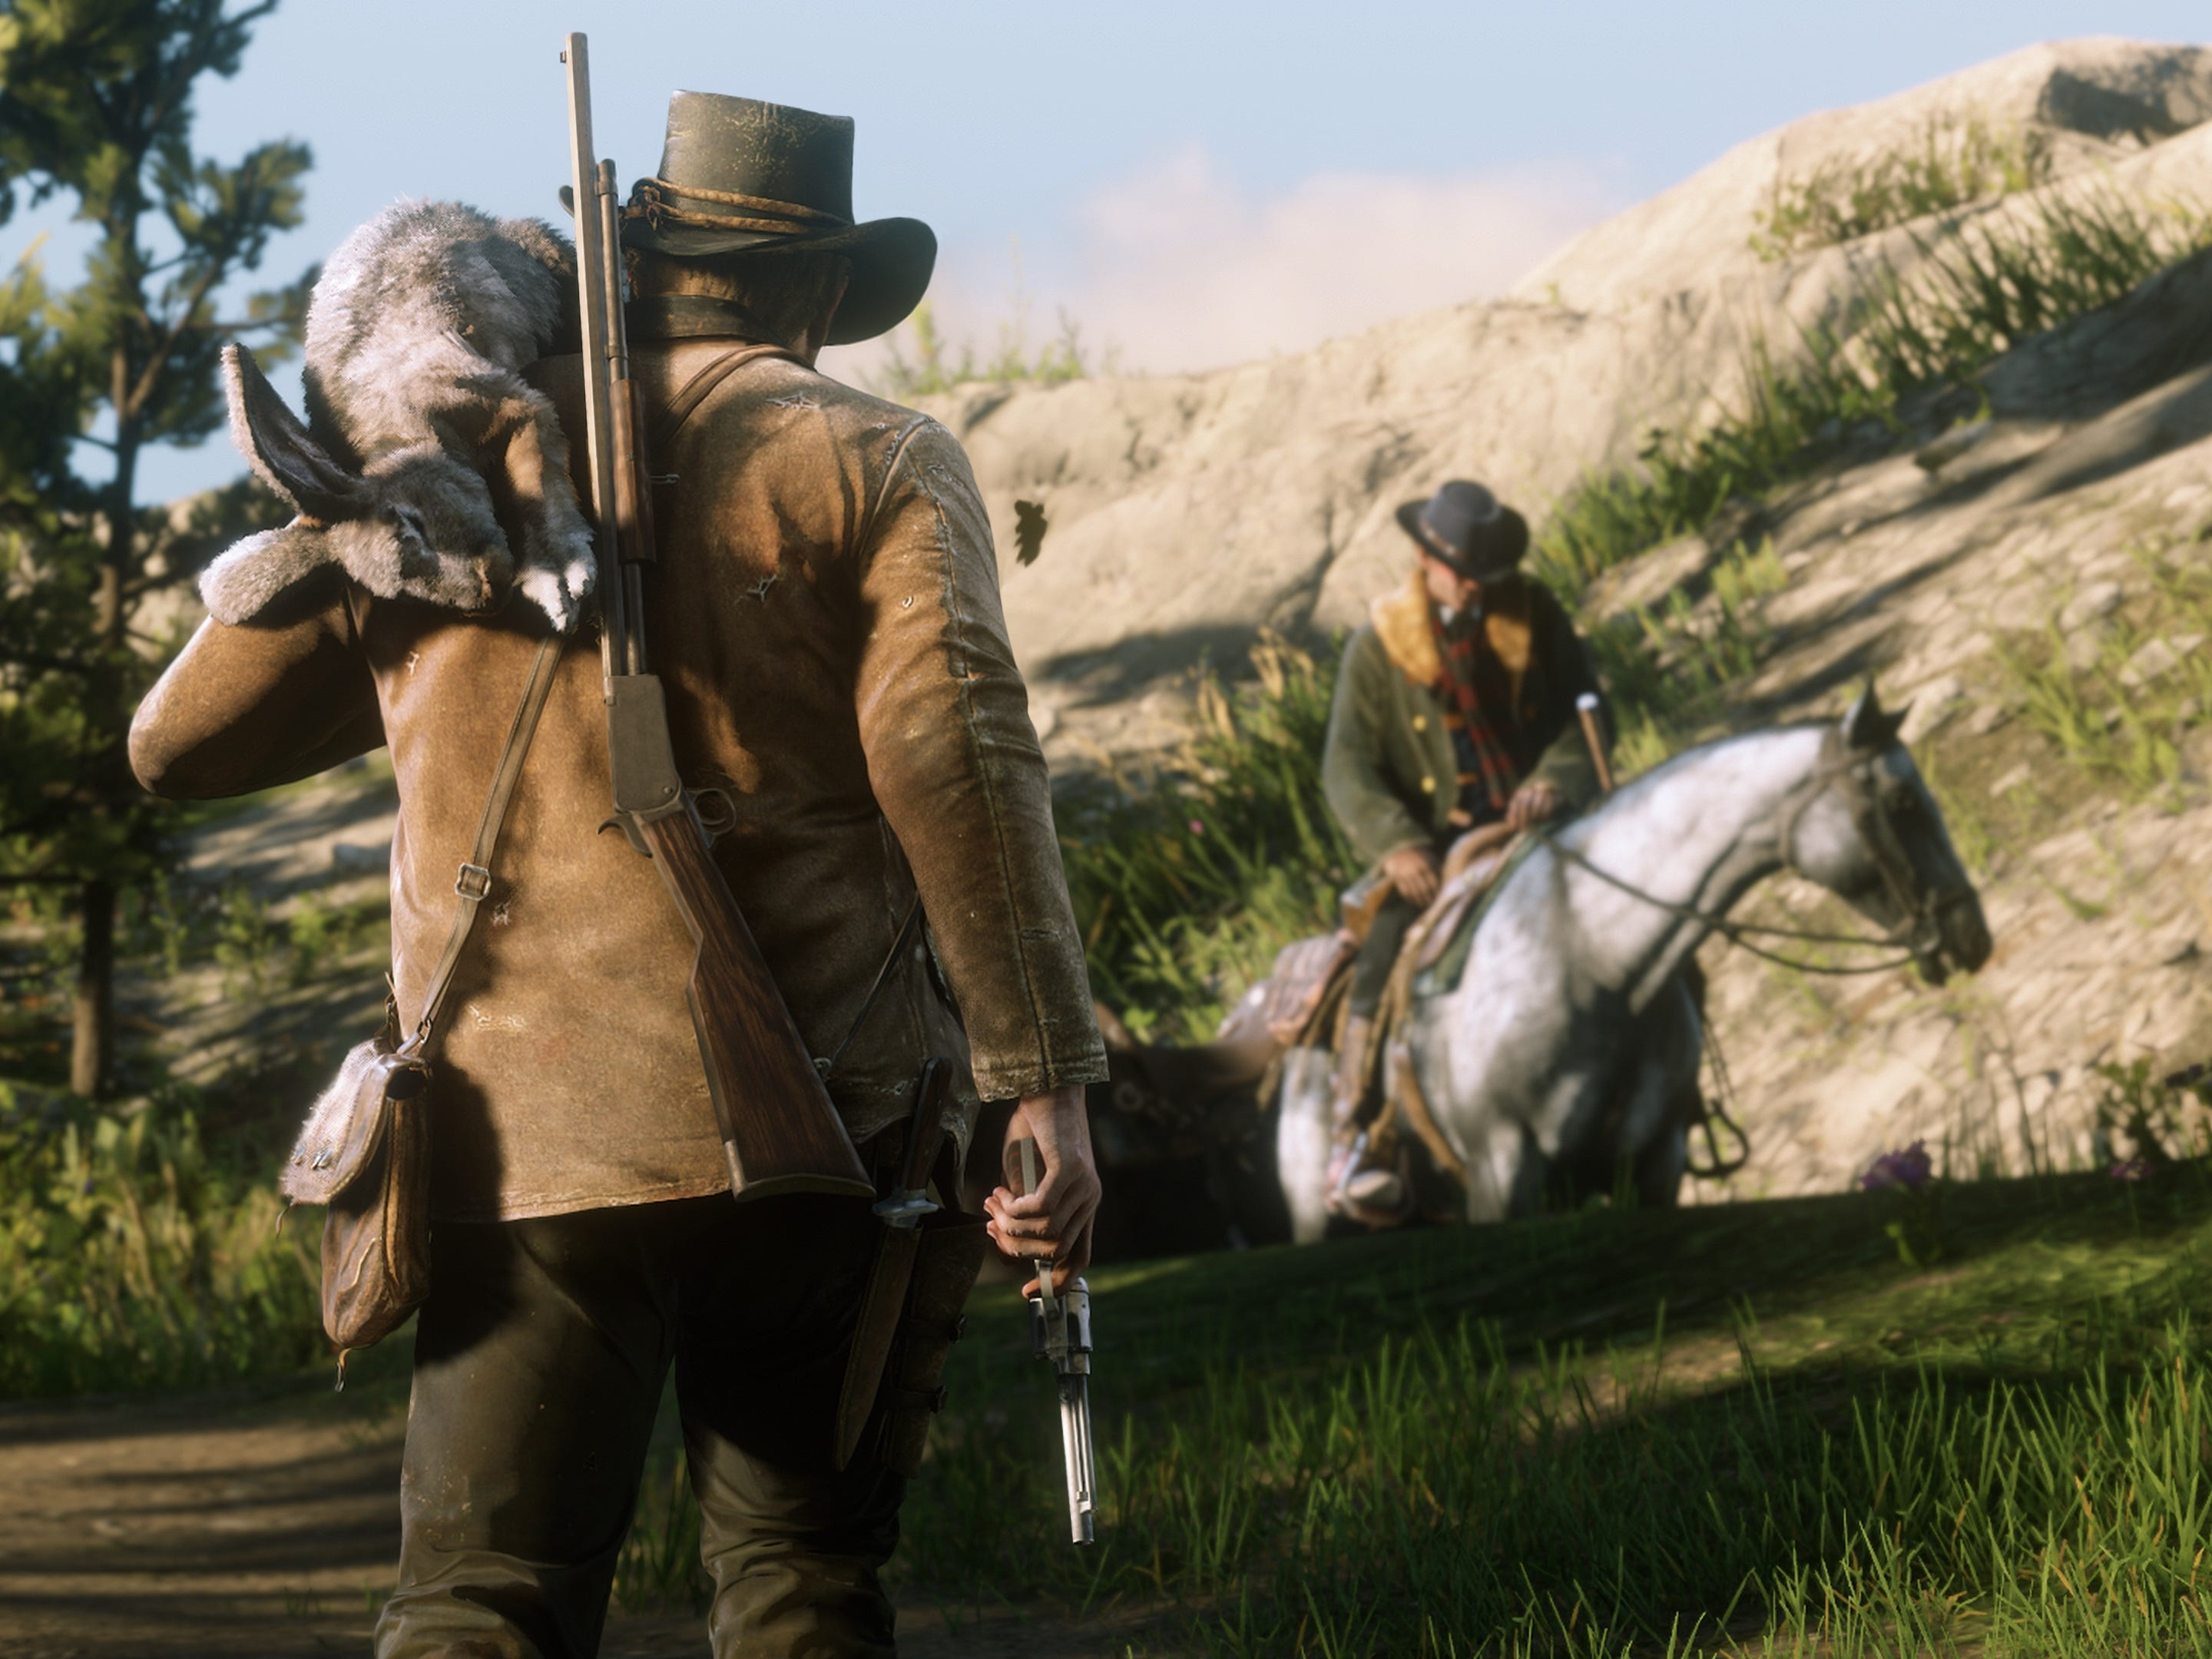 Six helpful hints for your 'Red Dead Redemption 2' adventure